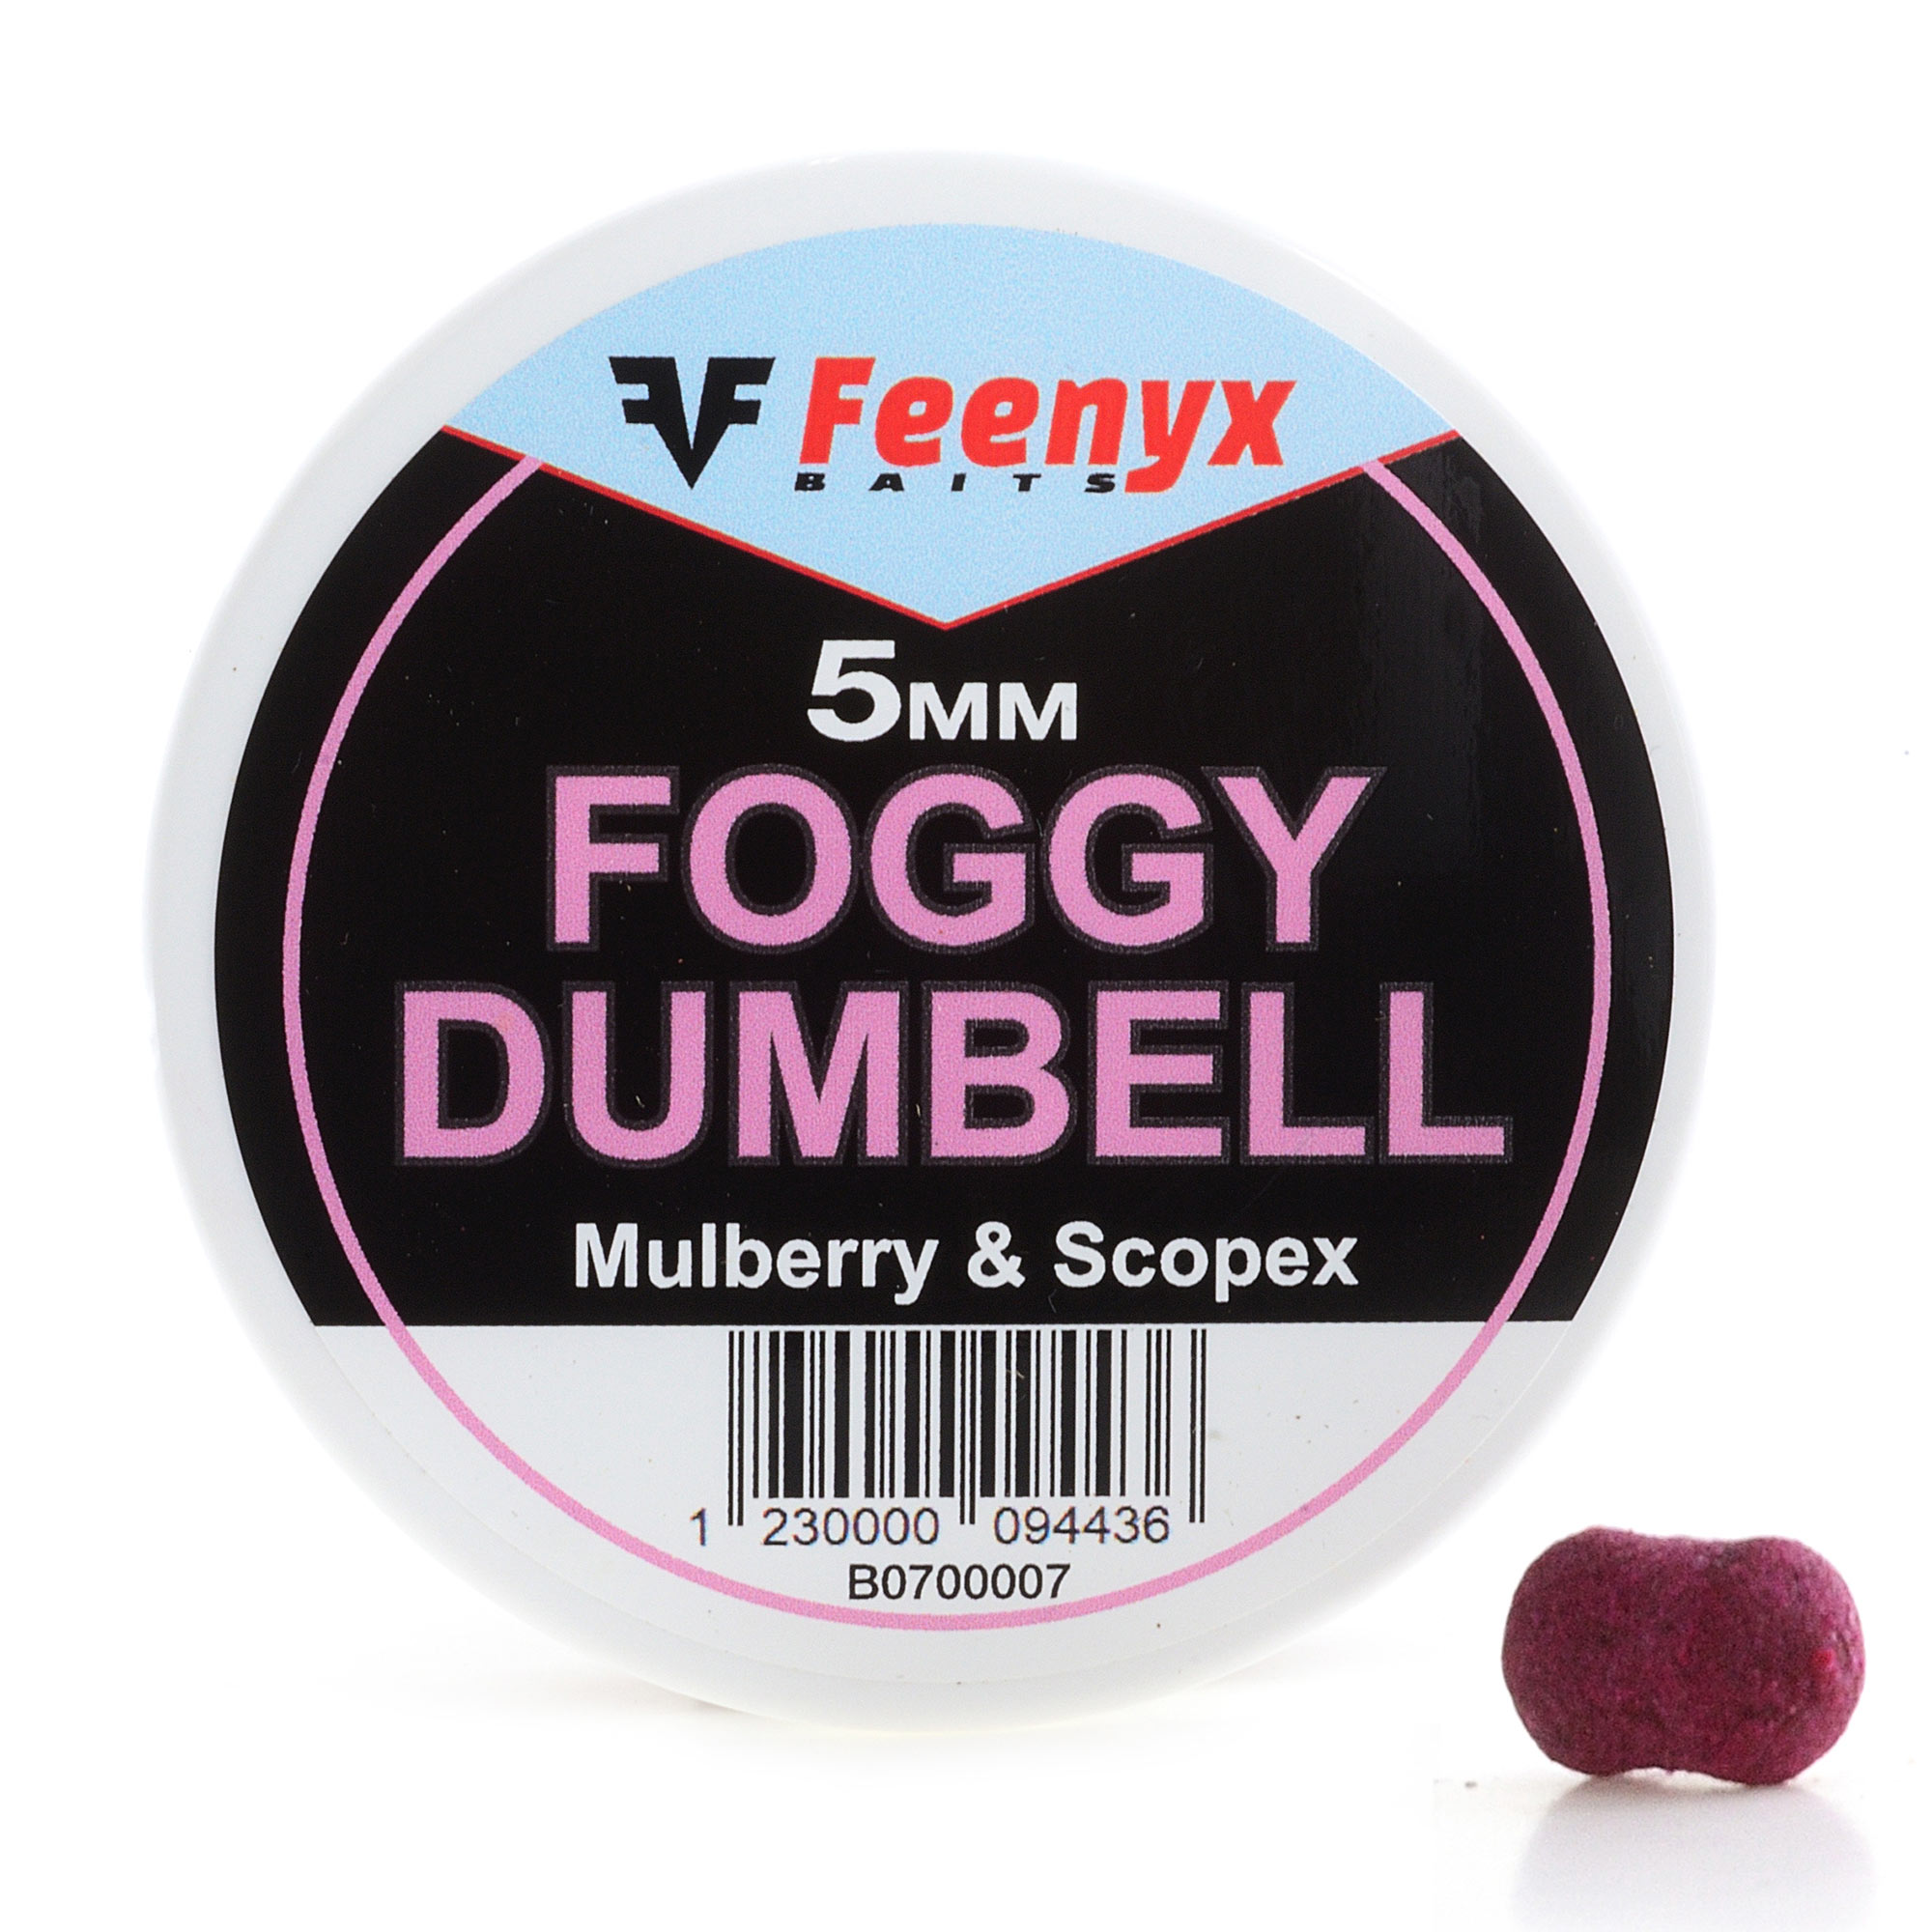 Foggy Dumbell Mulberry & Scopex 5mm FEENYX BAIT